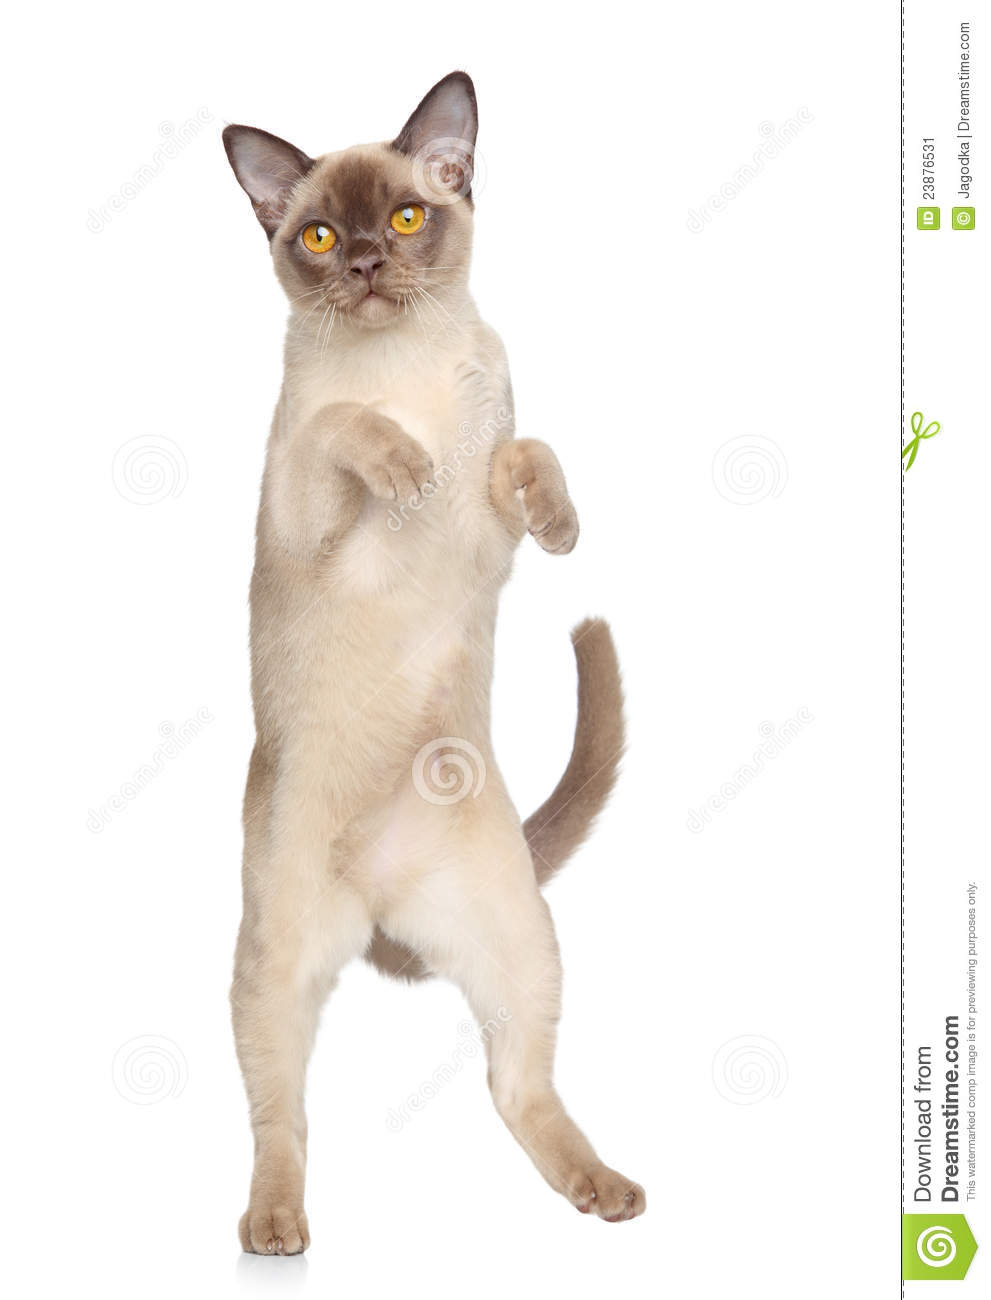 Cat is dancing on white background